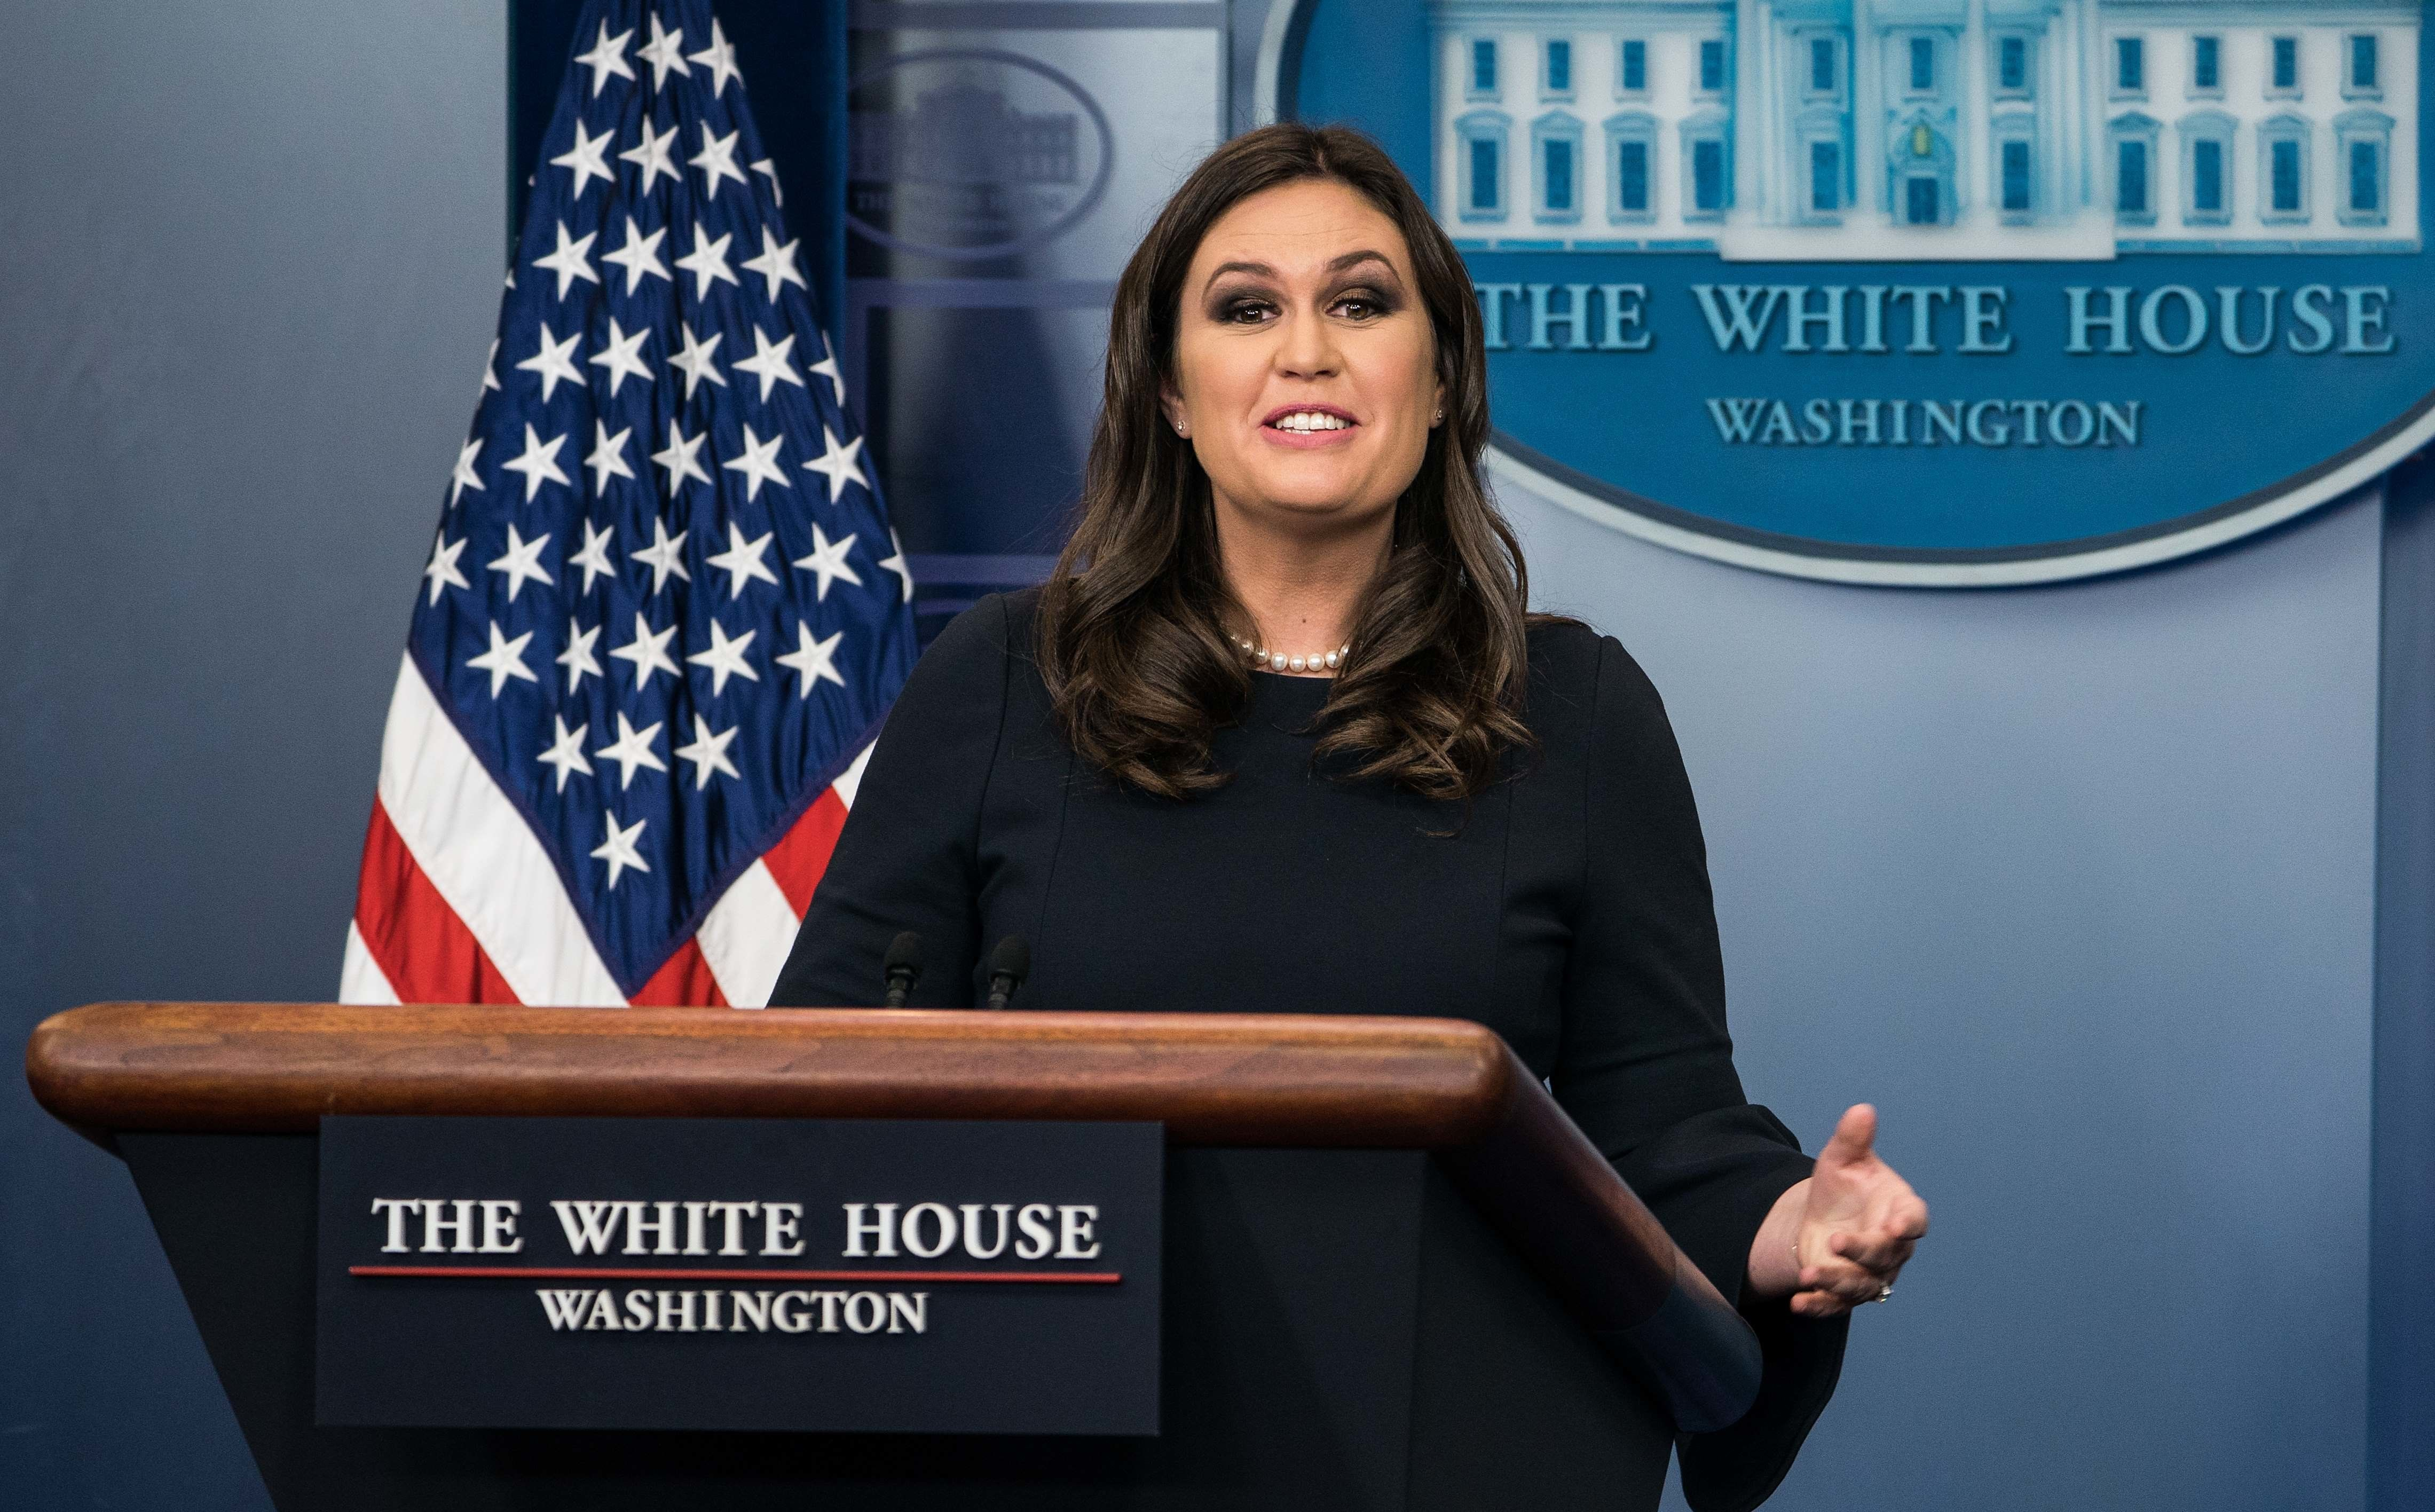 White House spokesperson Sarah Huckabee Sanders speaks at the press briefing at the White House in Washington, DC, on October 31, 2017. / AFP PHOTO / NICHOLAS KAMM        (Photo credit should read NICHOLAS KAMM/AFP/Getty Images)